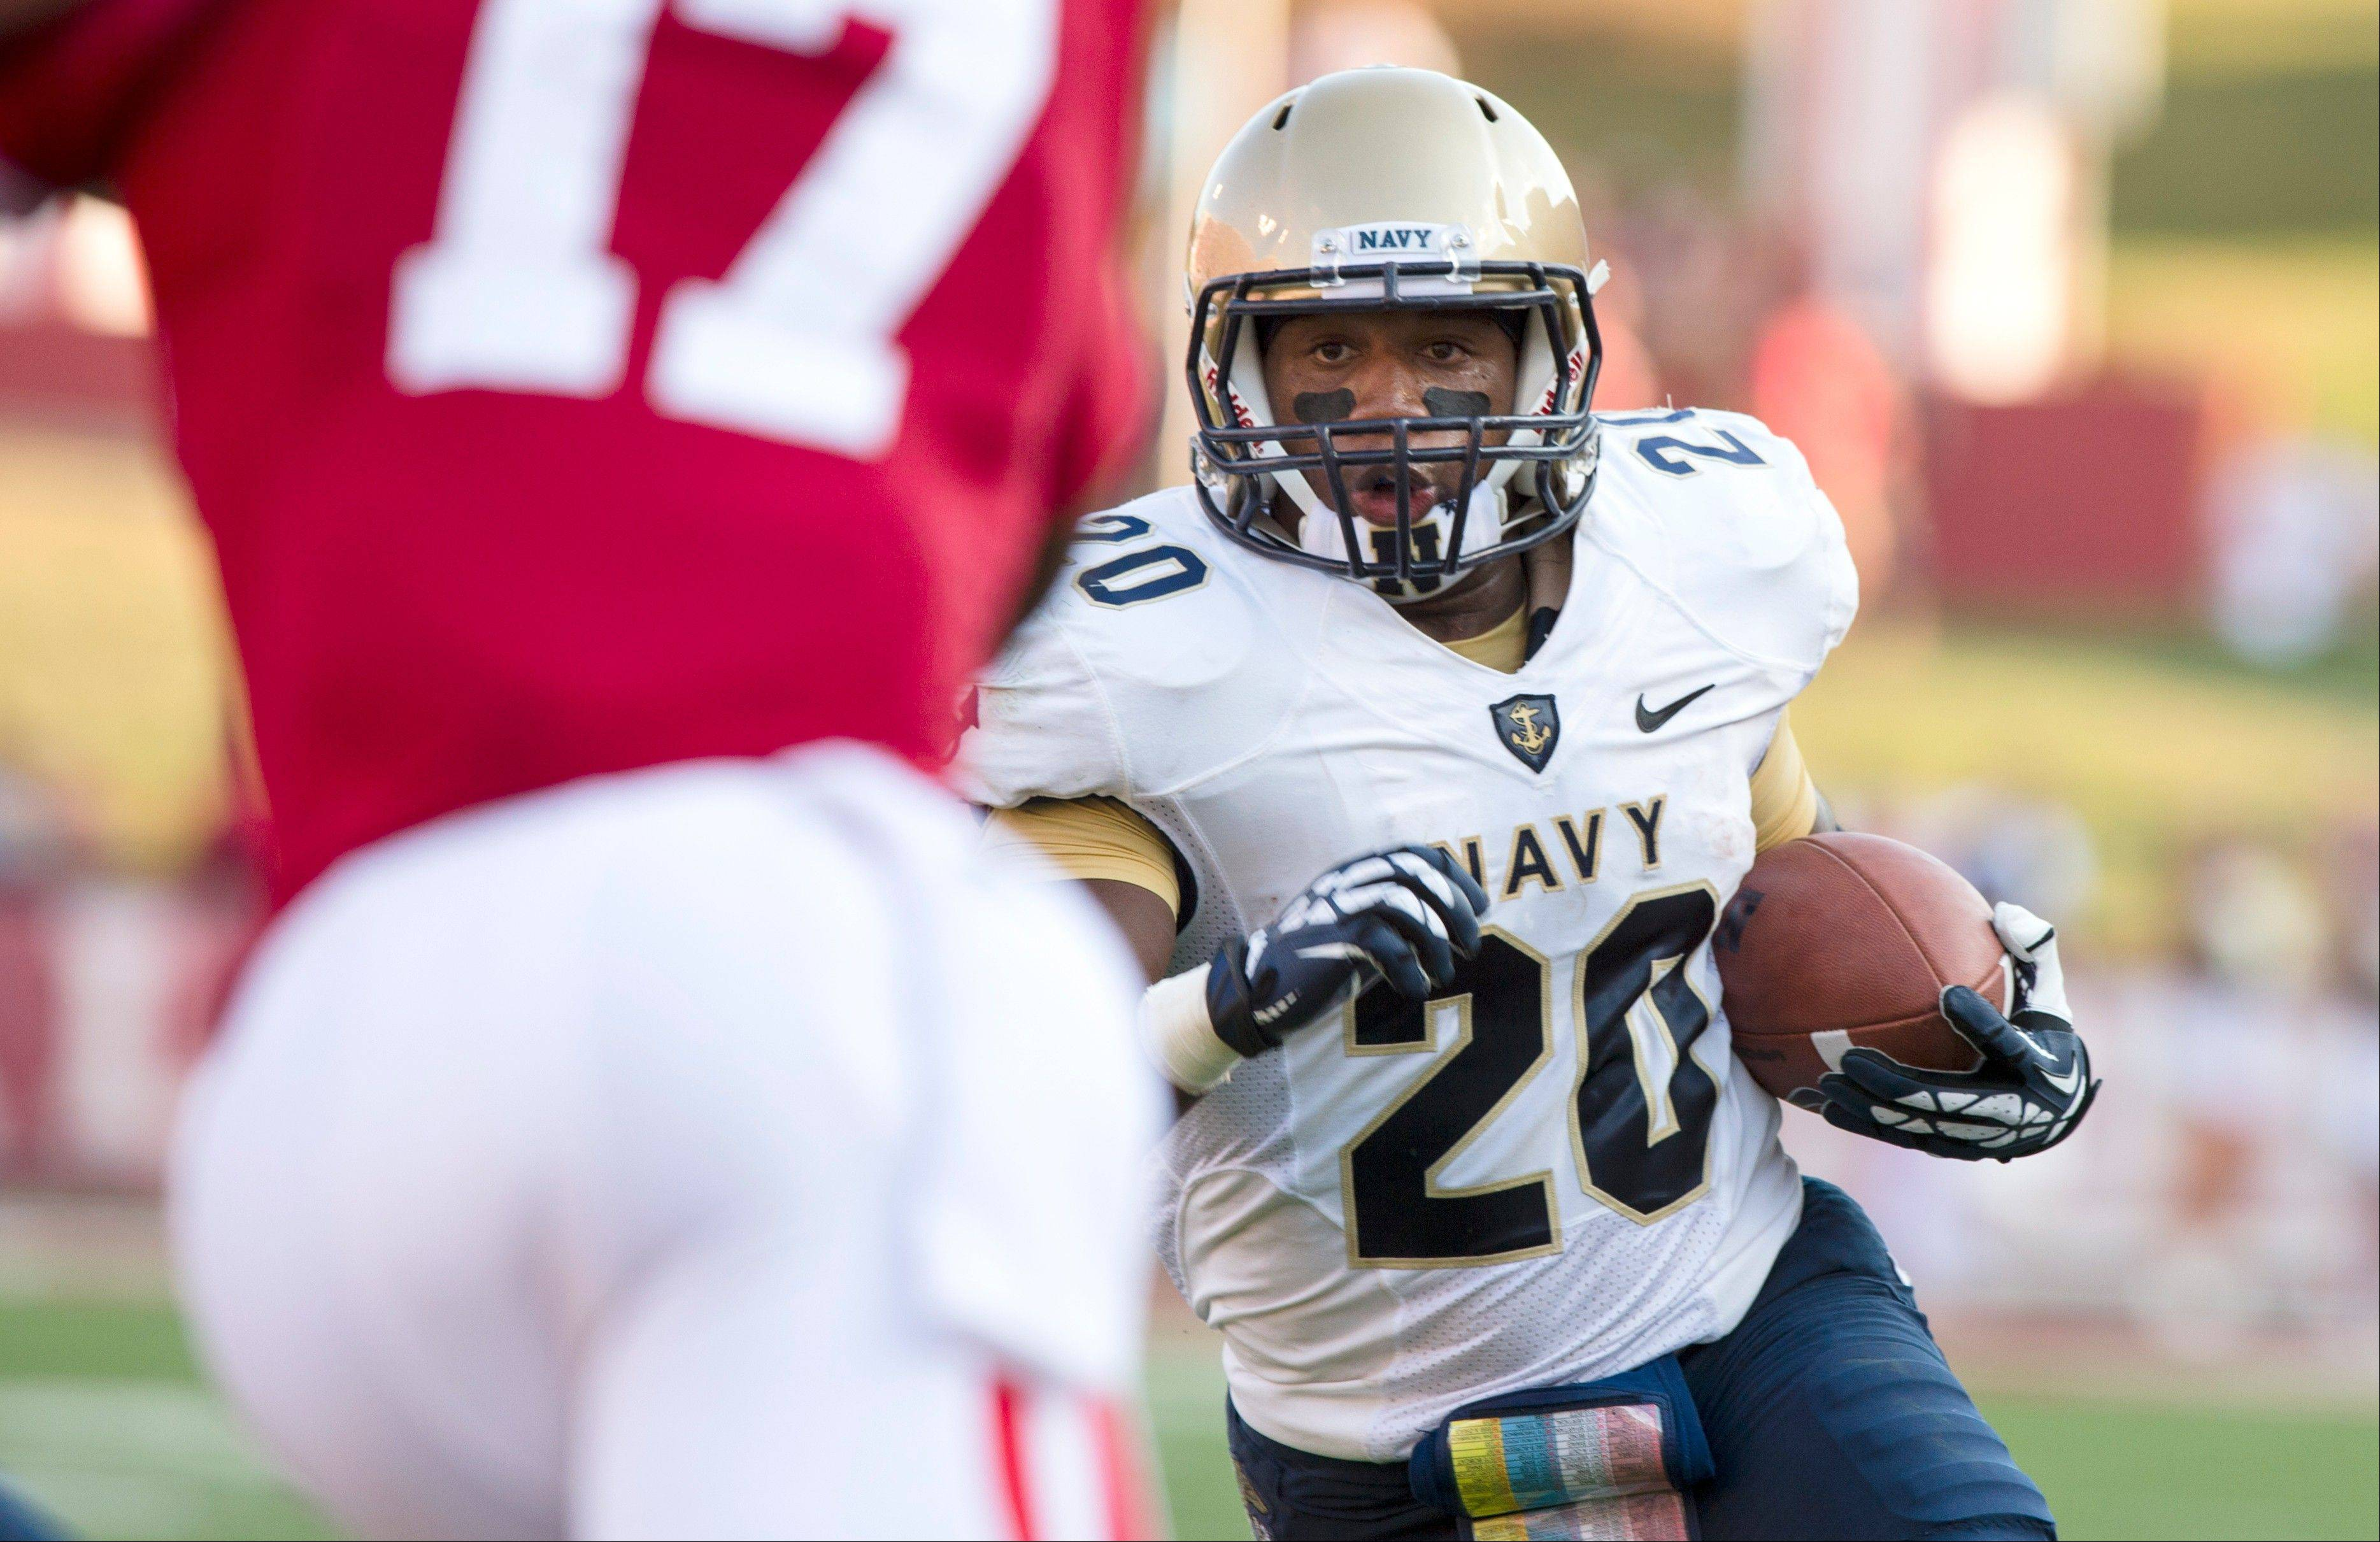 Navy�s Darius Staten runs into the Indiana secondary during the first half Saturday in Bloomington, Ind.